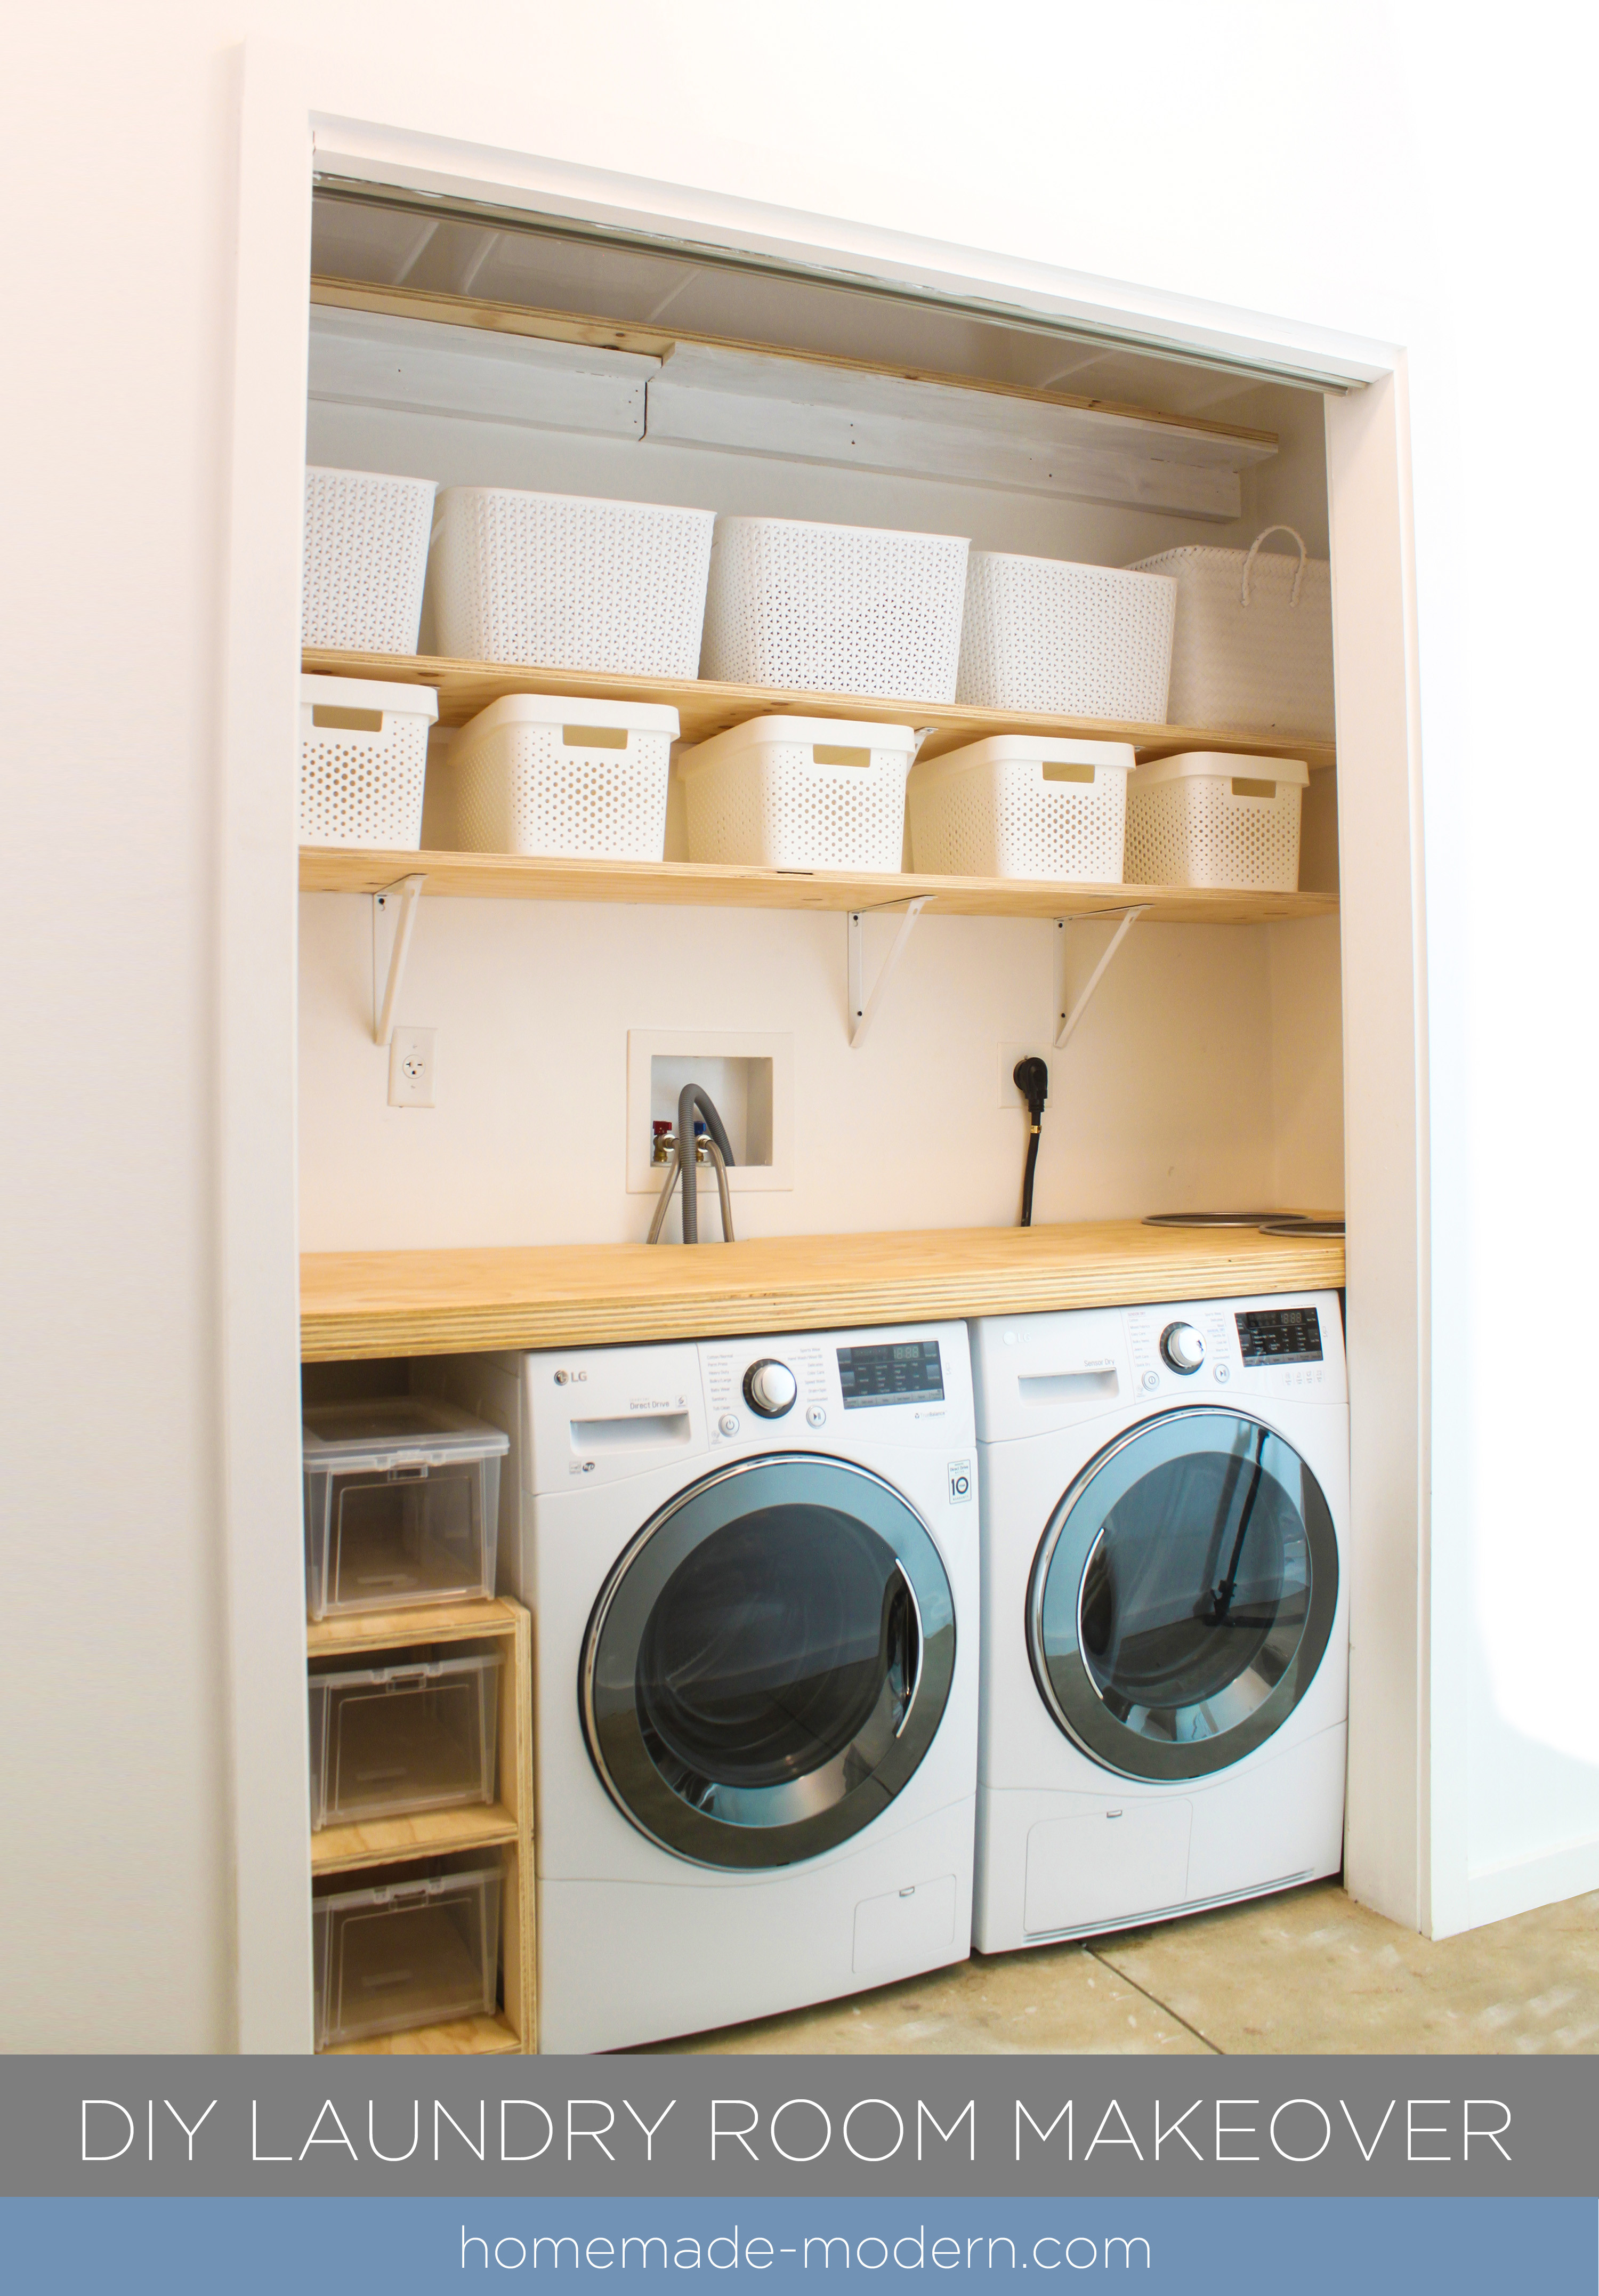 Best ideas about Diy Laundry Room . Save or Pin HomeMade Modern EP114 DIY Laundry Room Makeover Now.